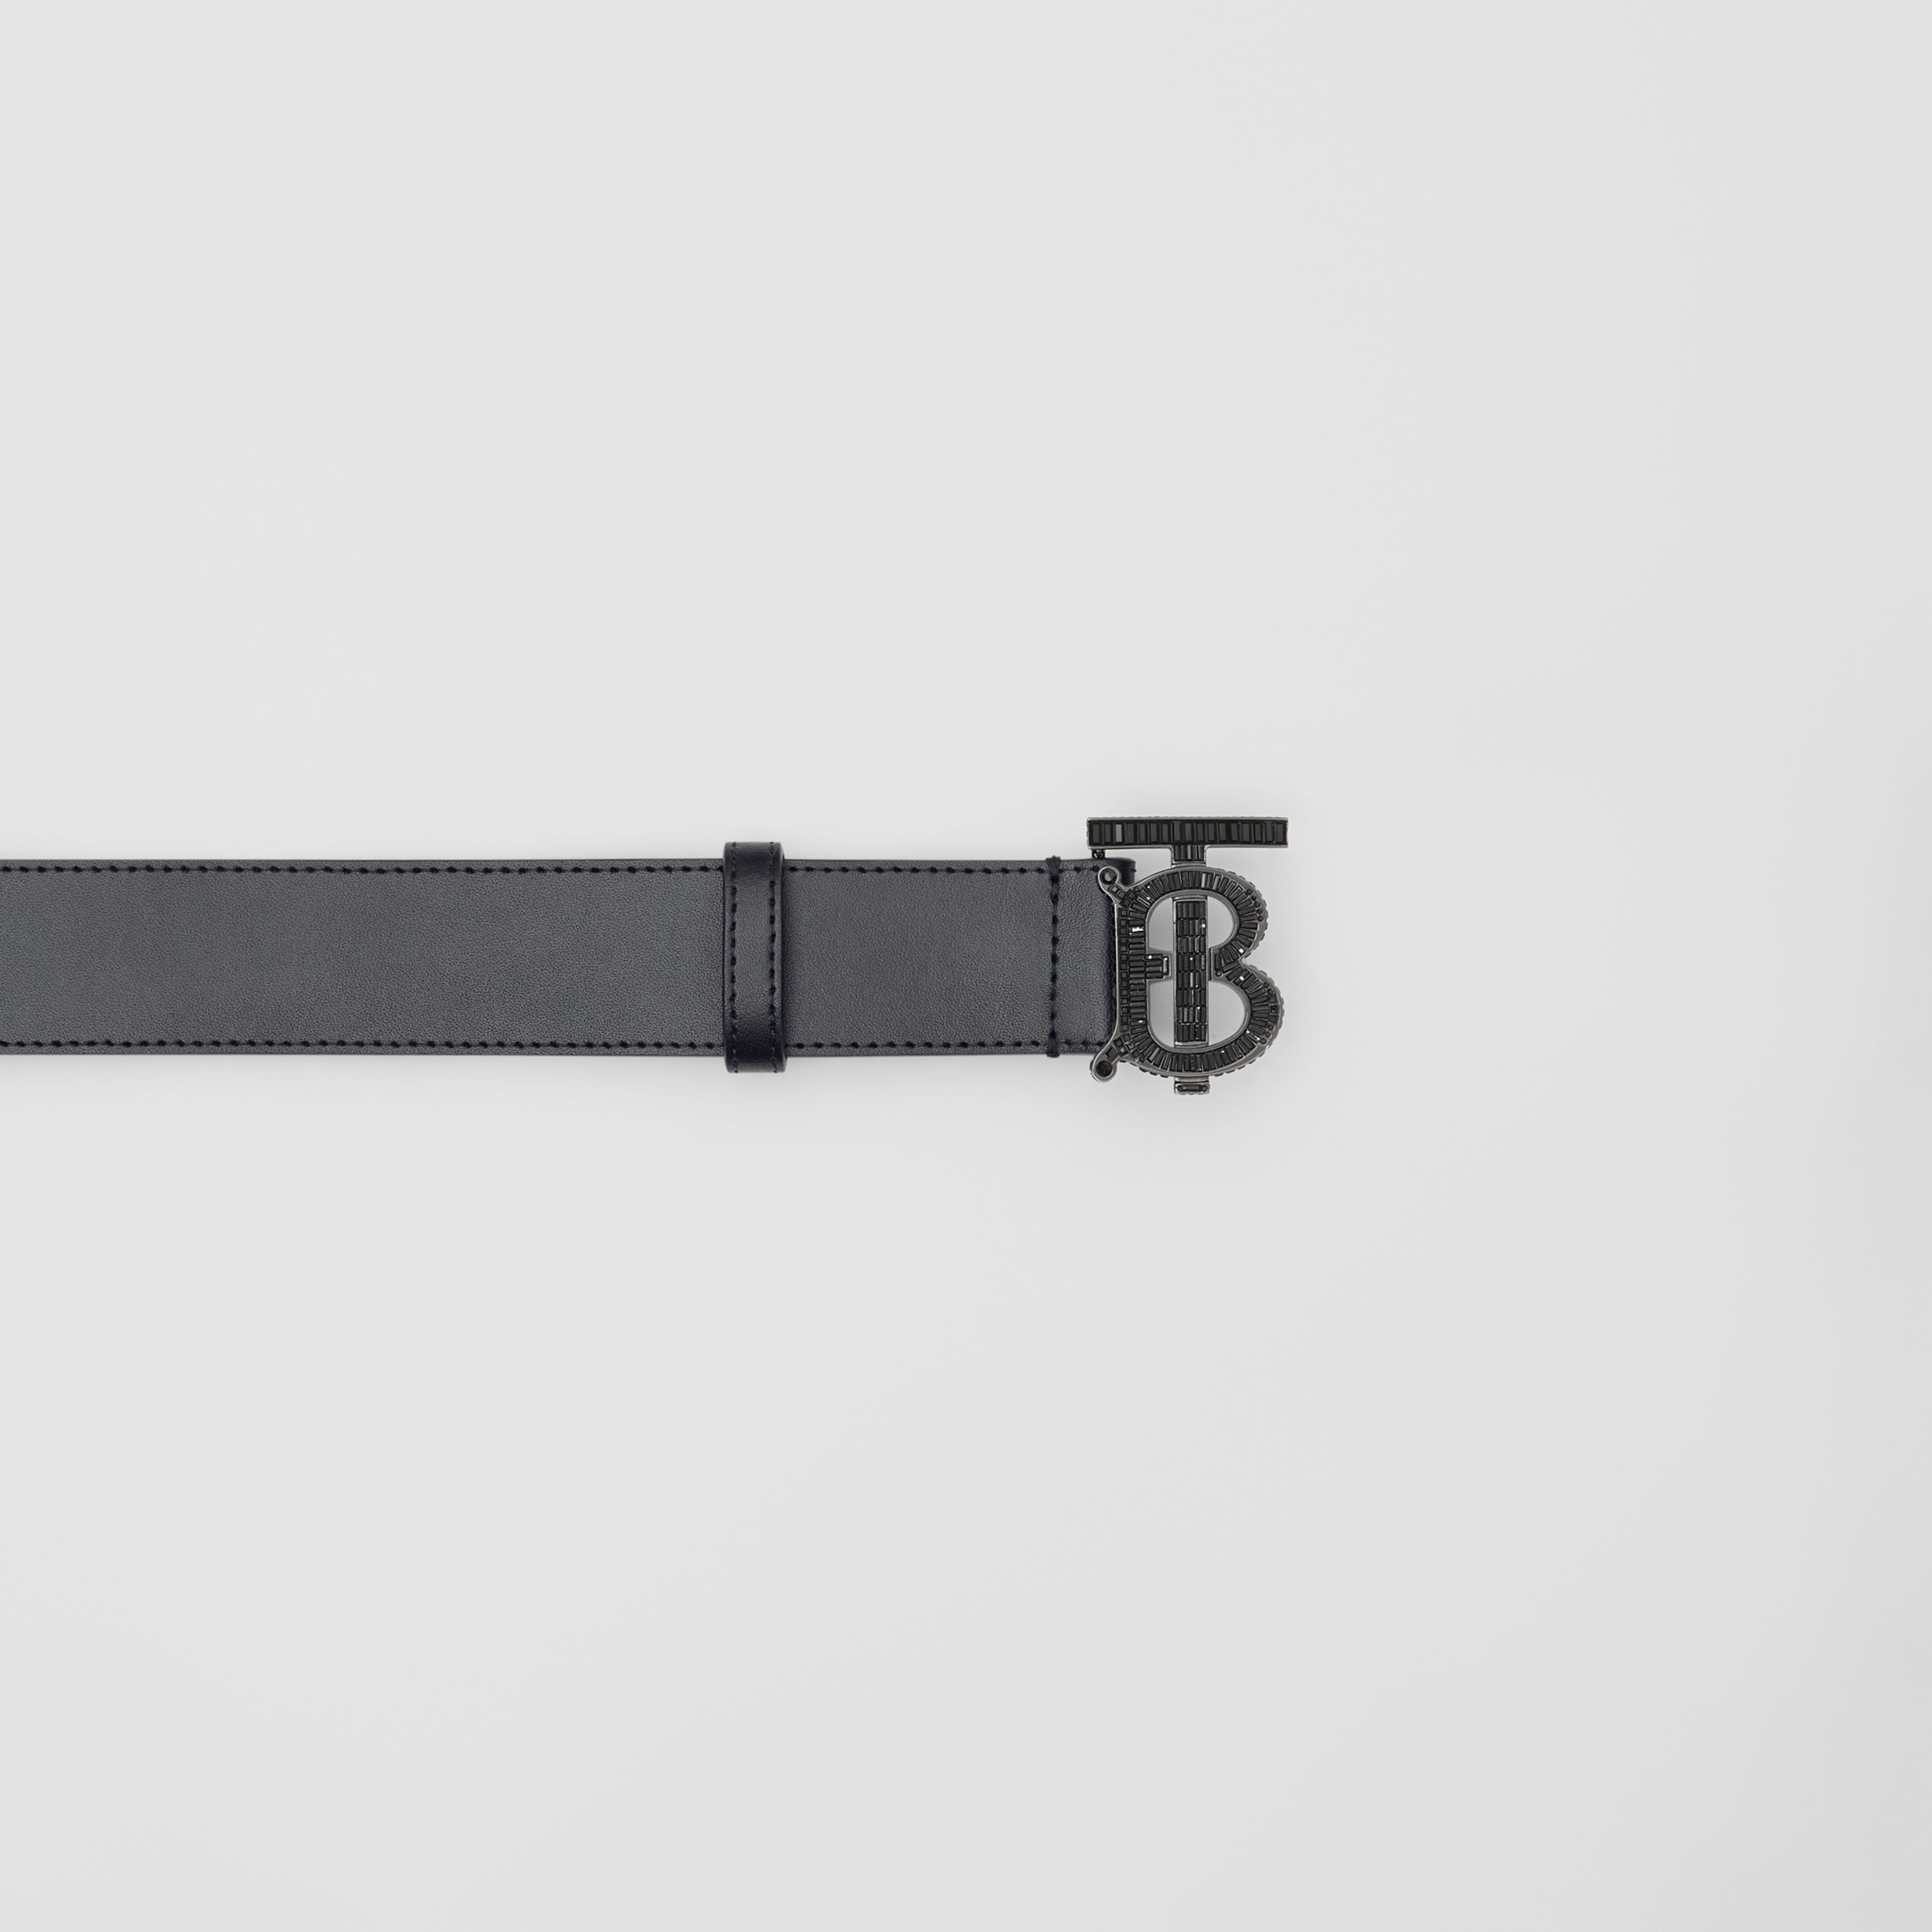 Crystal Monogram Motif Leather Belt in Black - Men | Burberry - 2